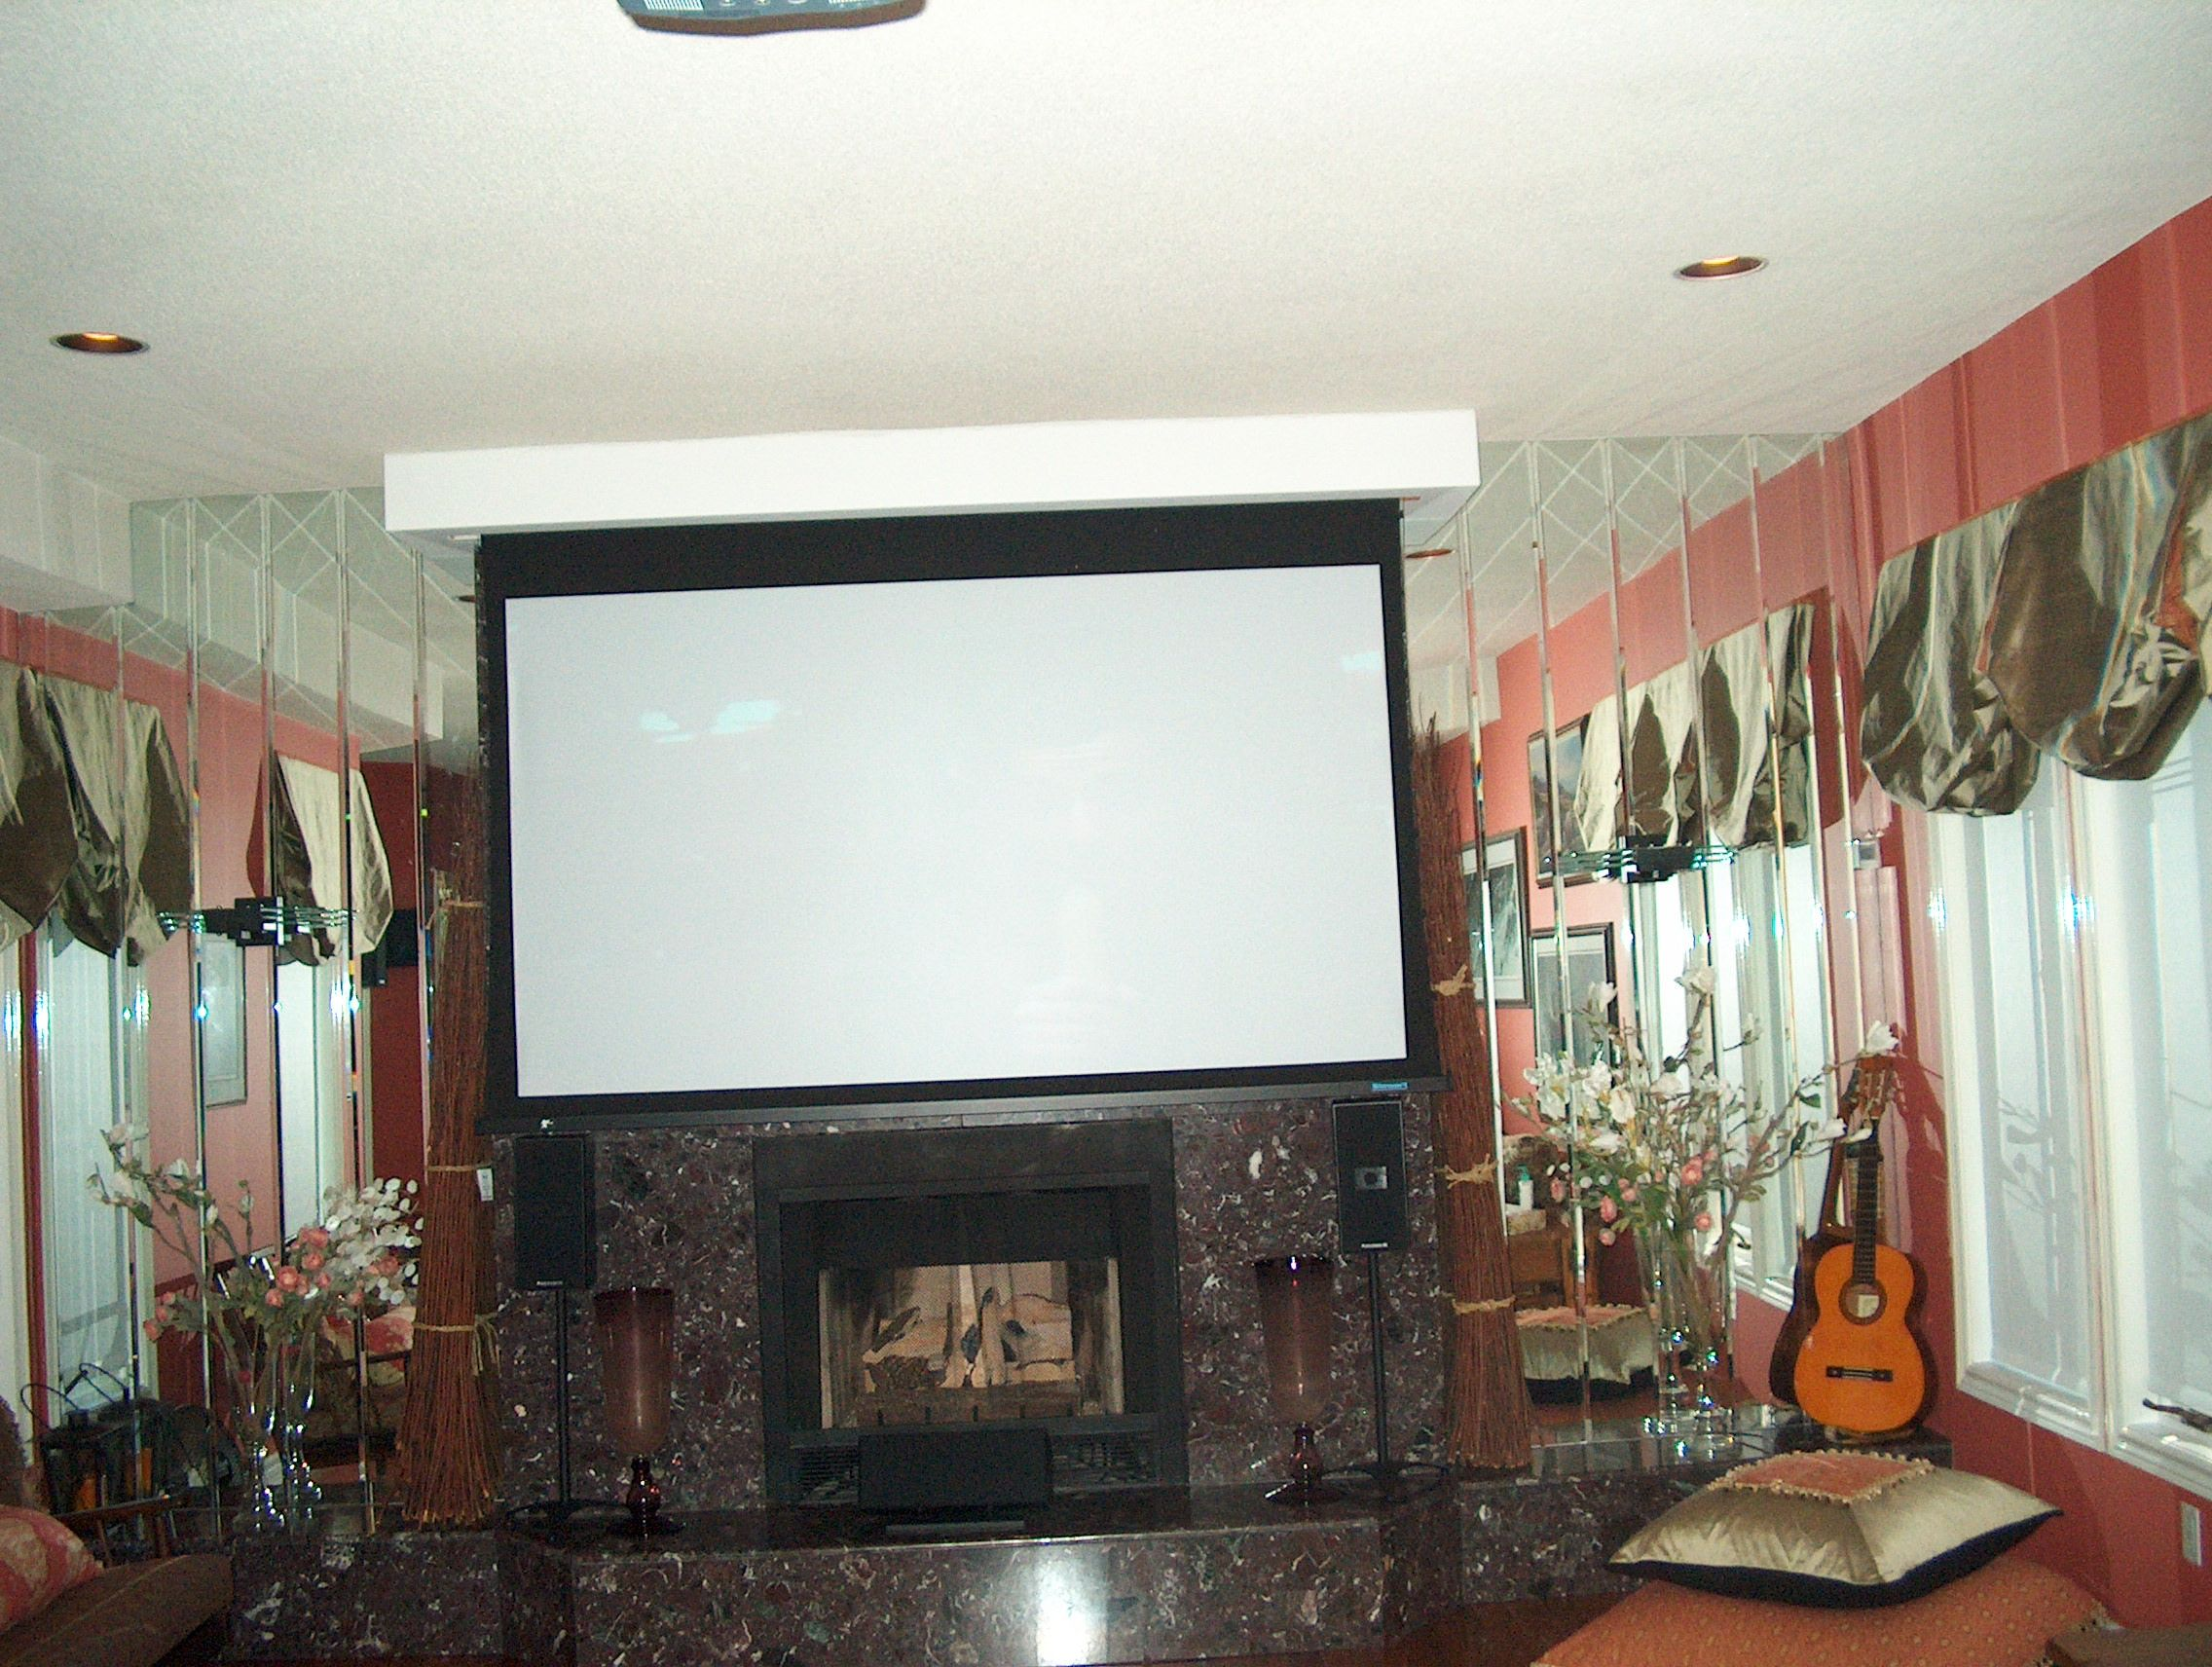 Drop down automated screen for this media room